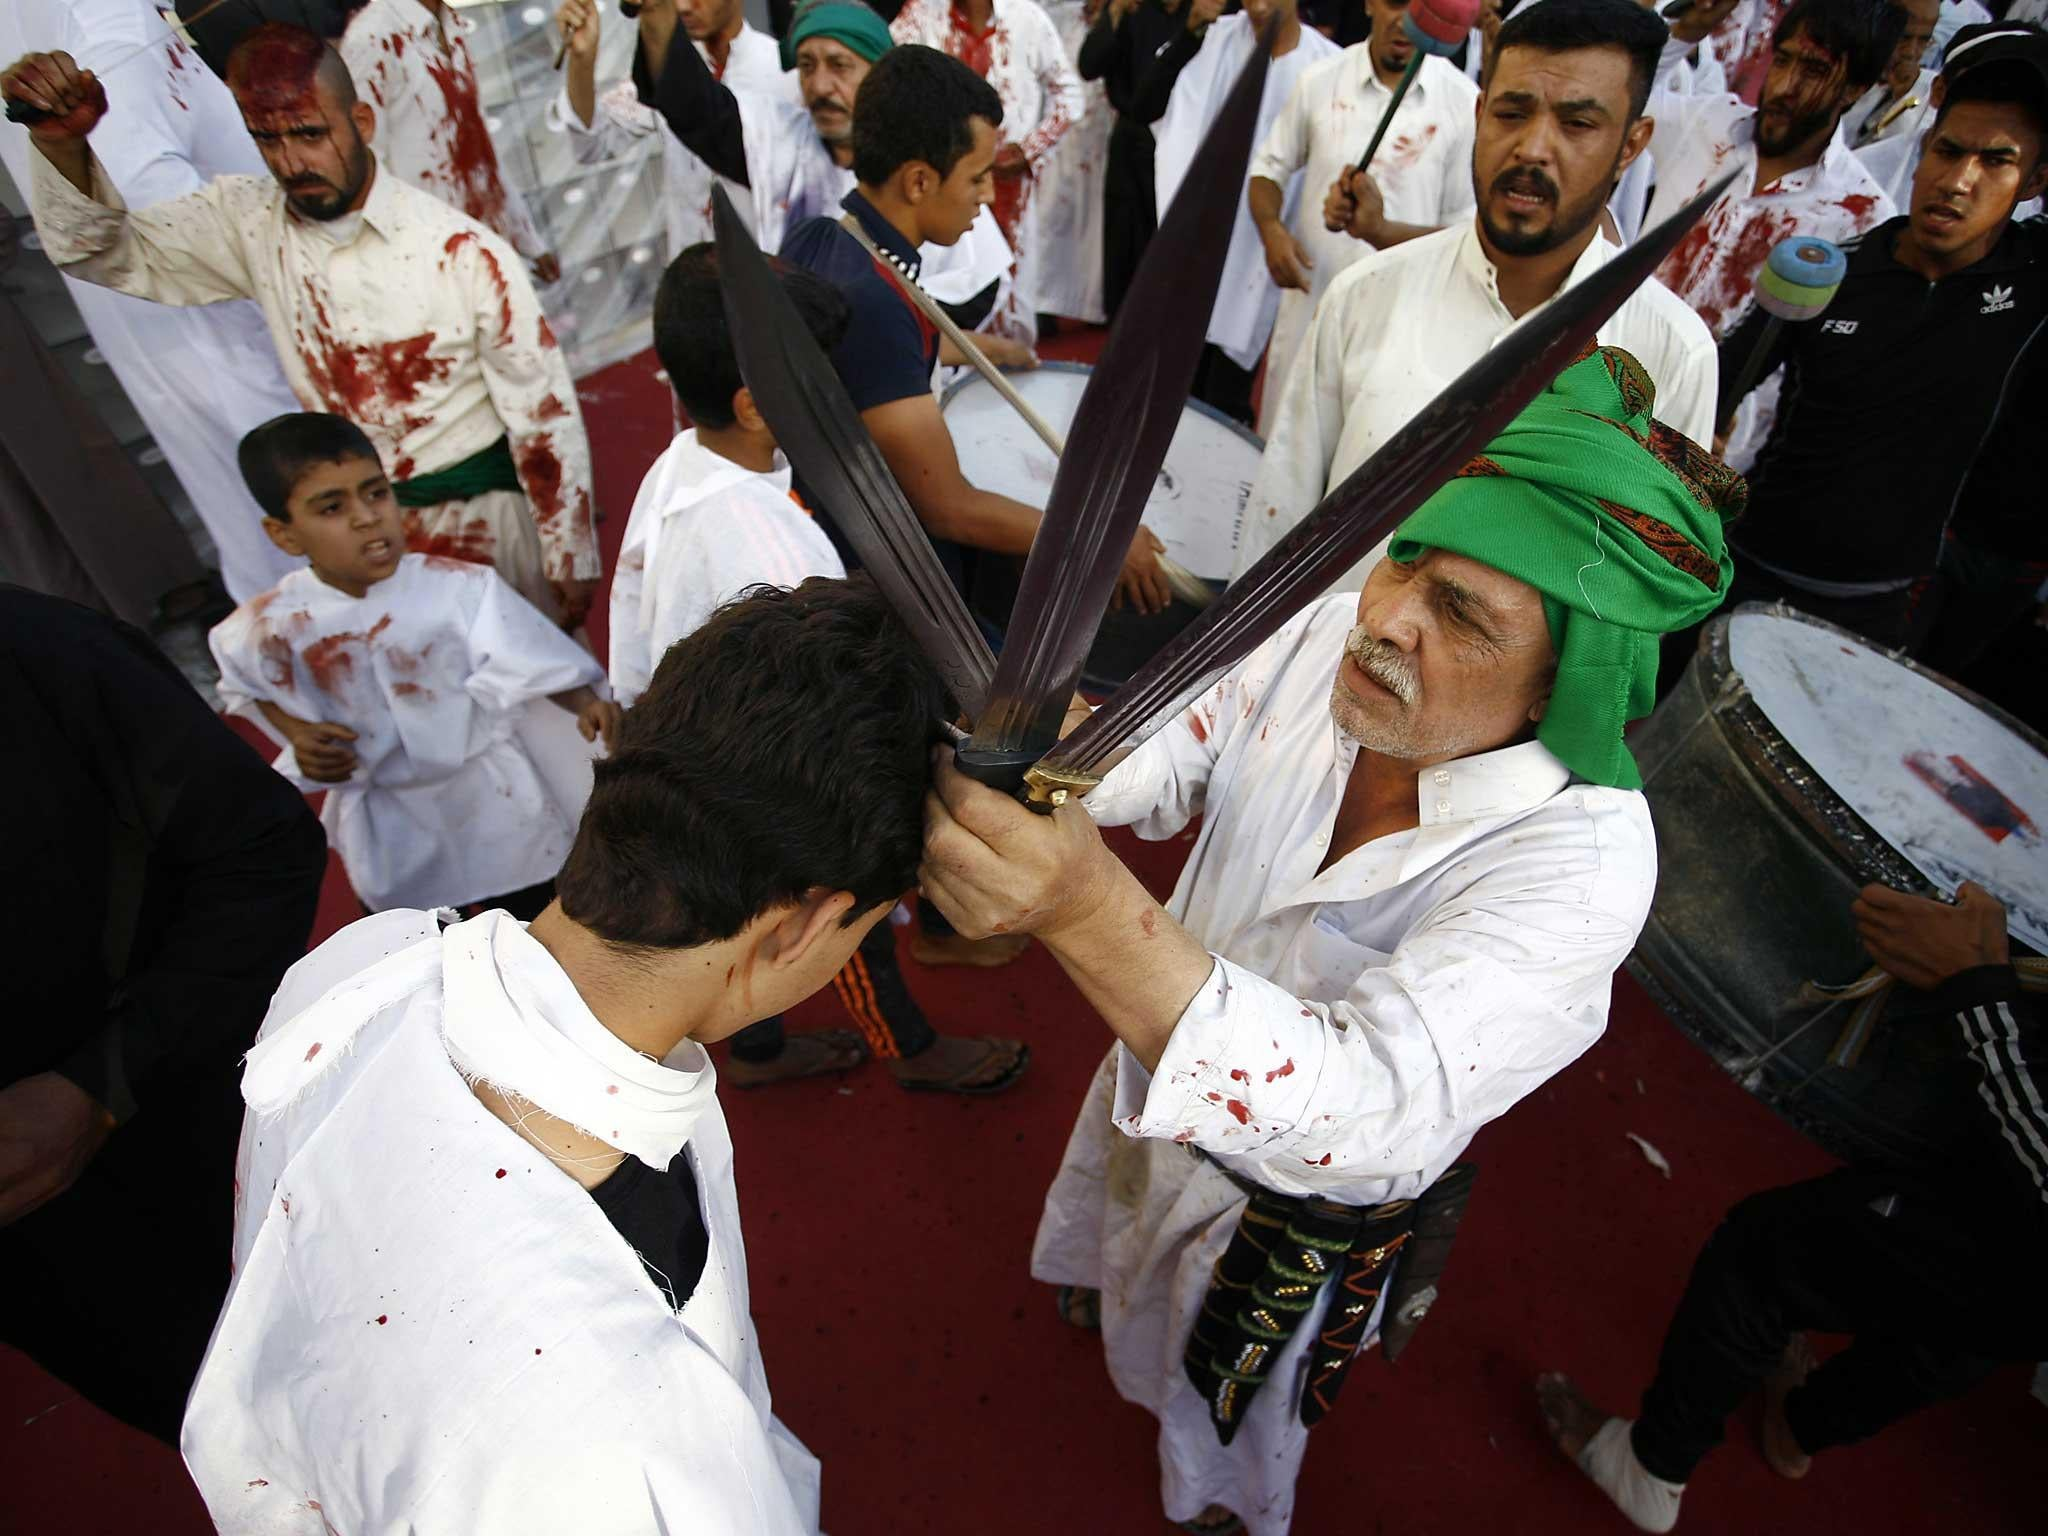 Ashura 2017: When is it? Everything you need to know about the